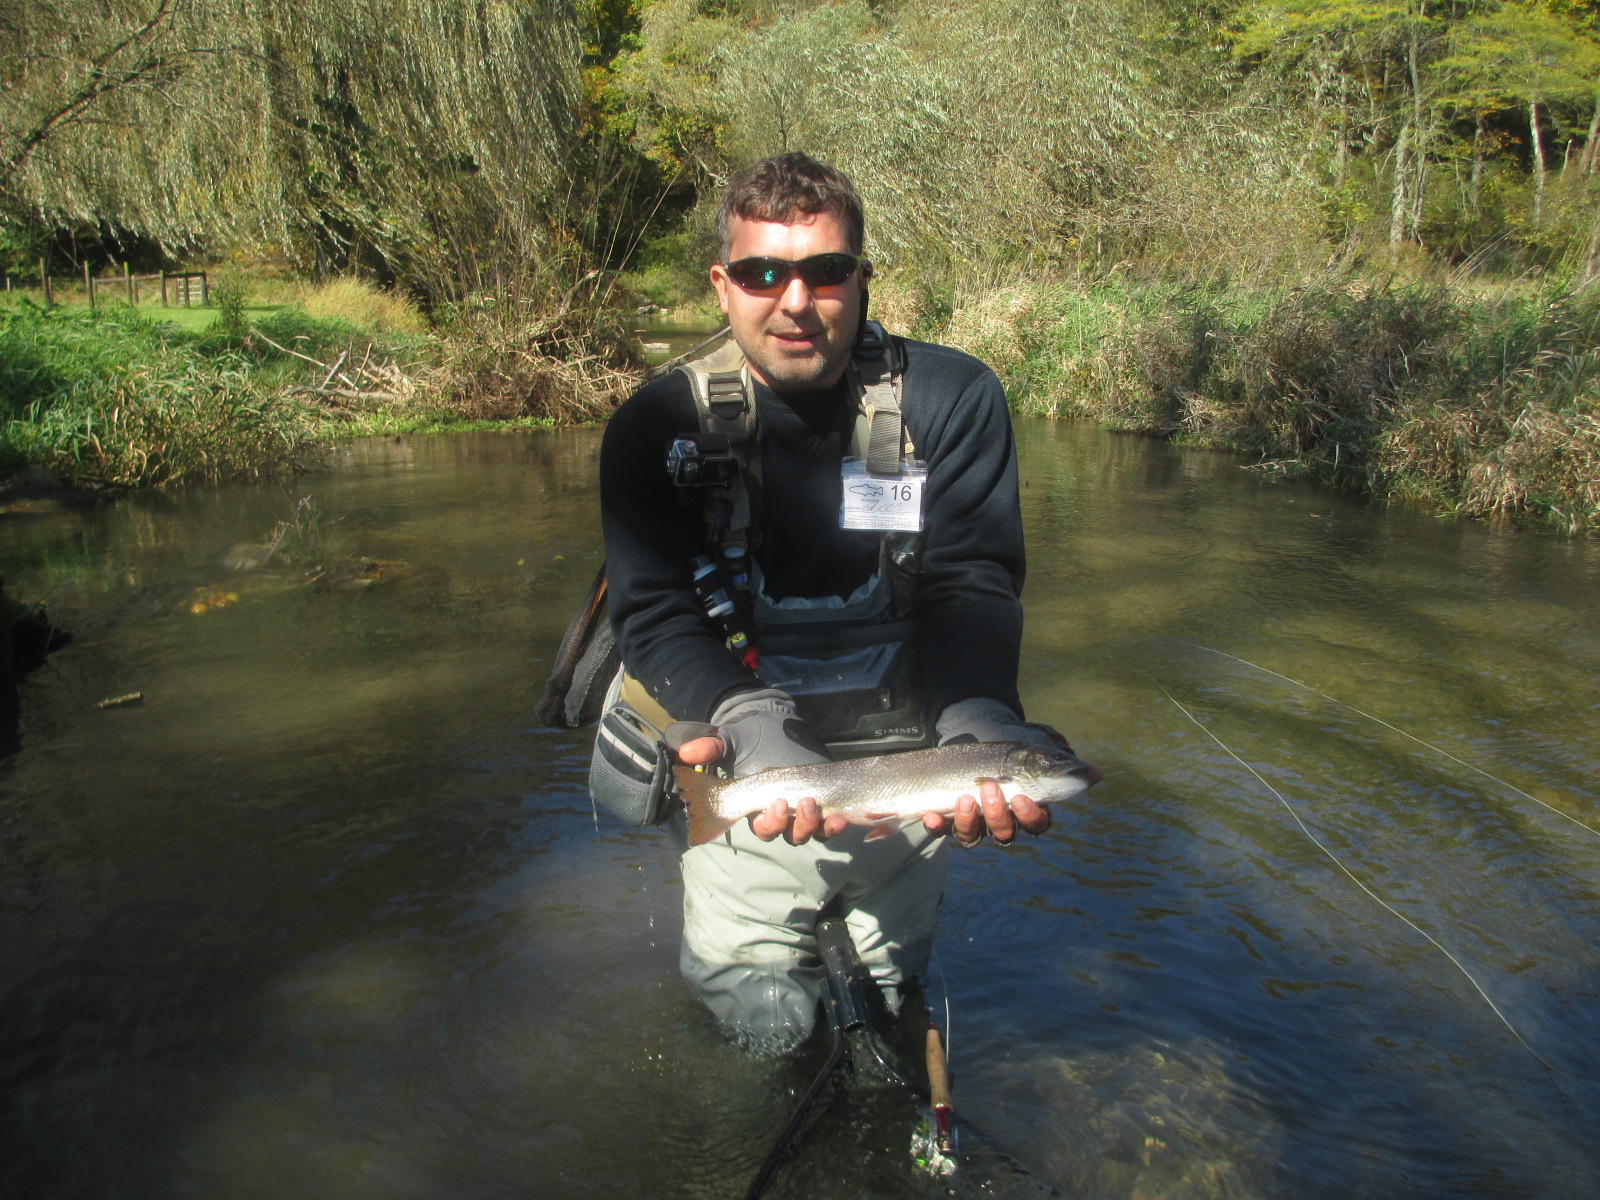 Pa fly fishing october on spruce creek trout haven for Pa fly fishing